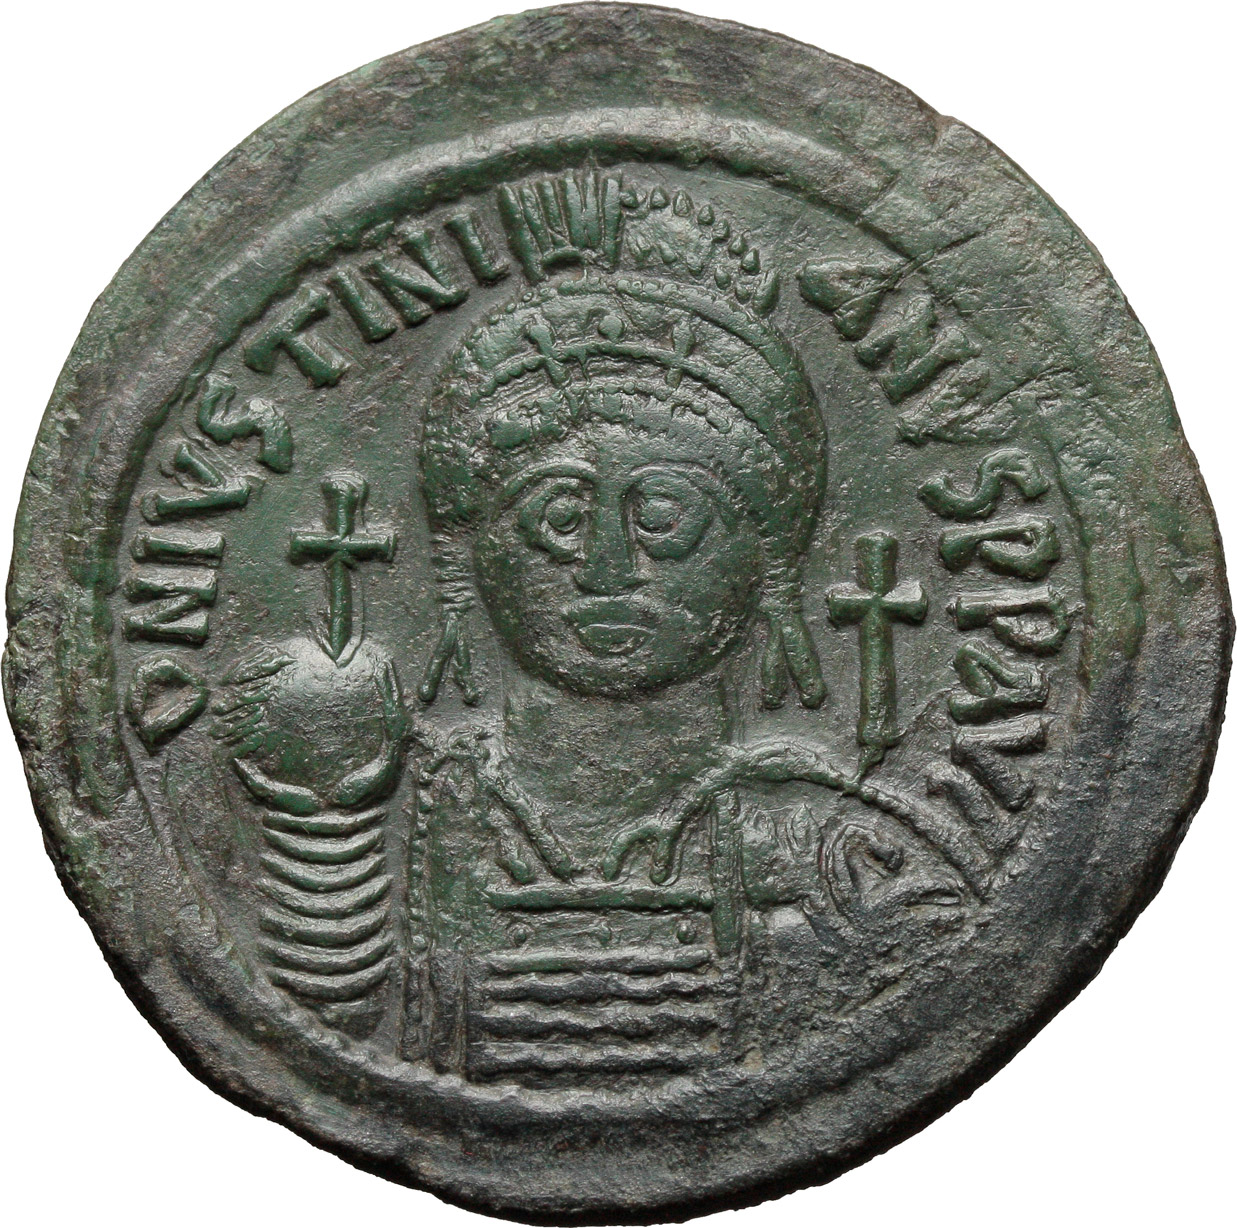 D/ Justinian I (527-565).  AE Follis, Cyzicus mint. Obv. DN IVSTINIANVS PP AVG. Helmeted and cuirassed bust facing, holding globus cruciger and shield; to right, cross. Rev. Large M between A/N/N/O e X/II/I; above, cross; below, A; in exergue, KYZ. DOC 164-81. Sear 207. AE. g. 22.04  mm. 42.00   Rare in this condition, green patina. About EF.